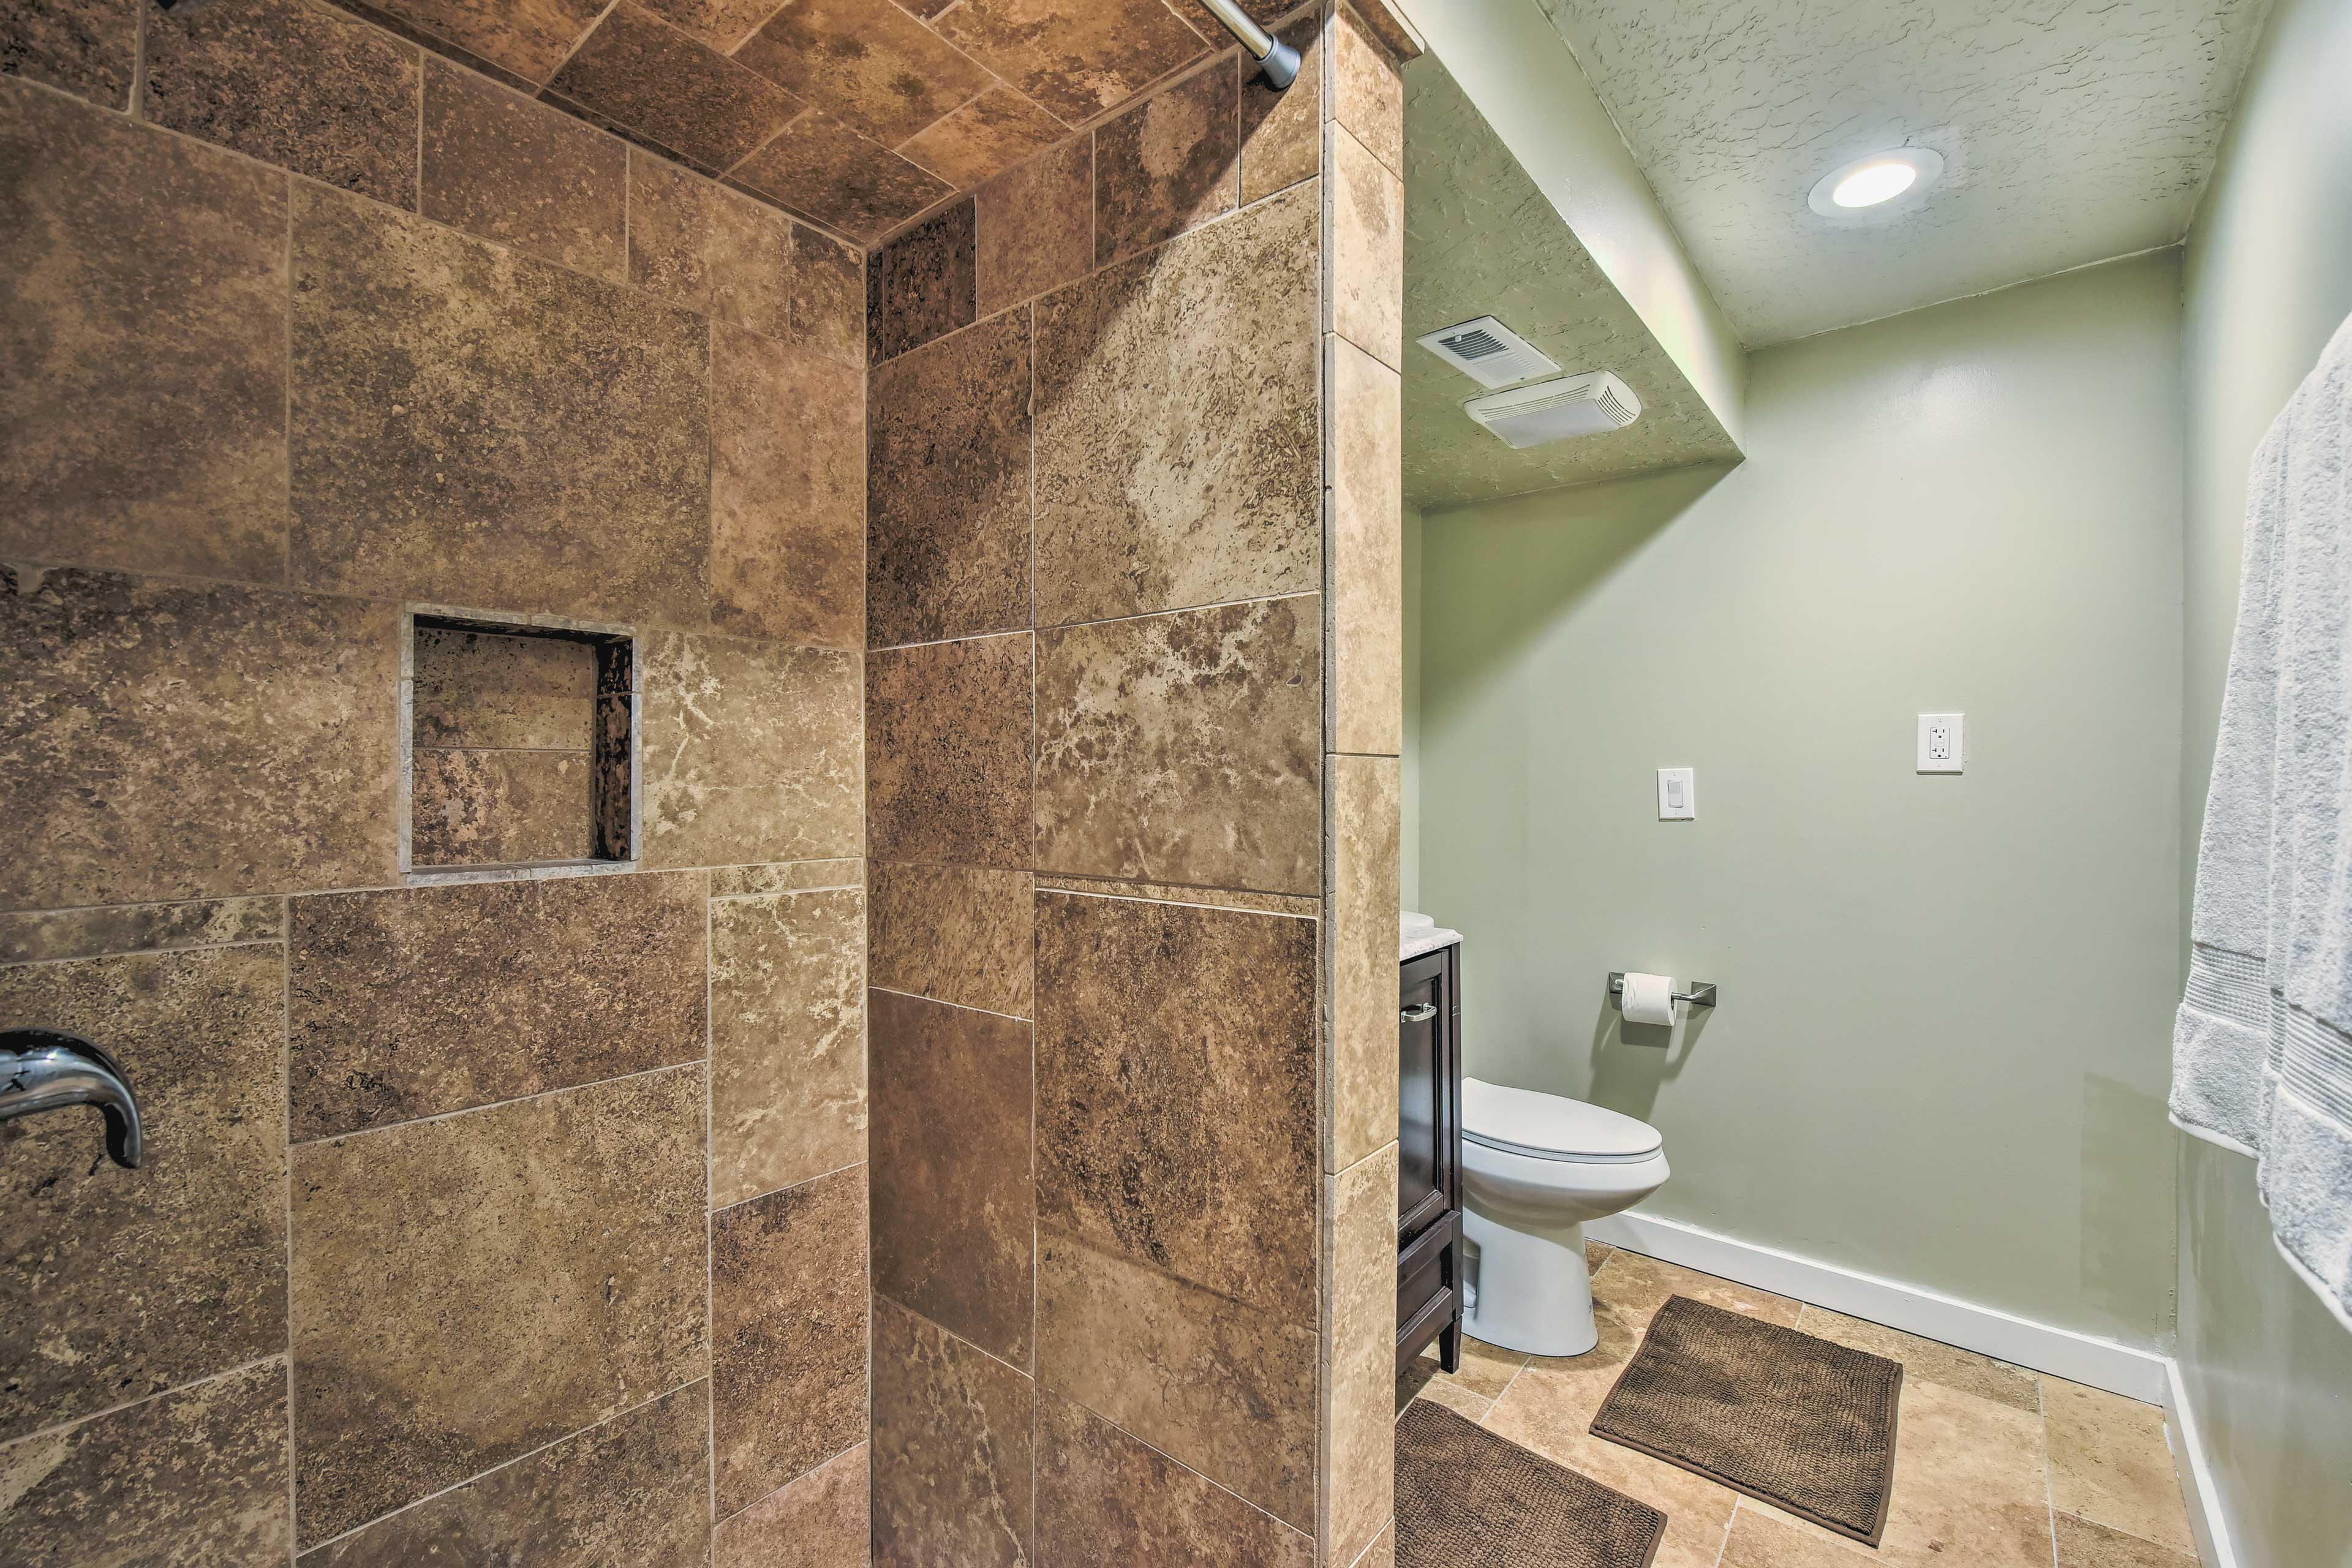 Enjoy washing off in this immaculate shower.